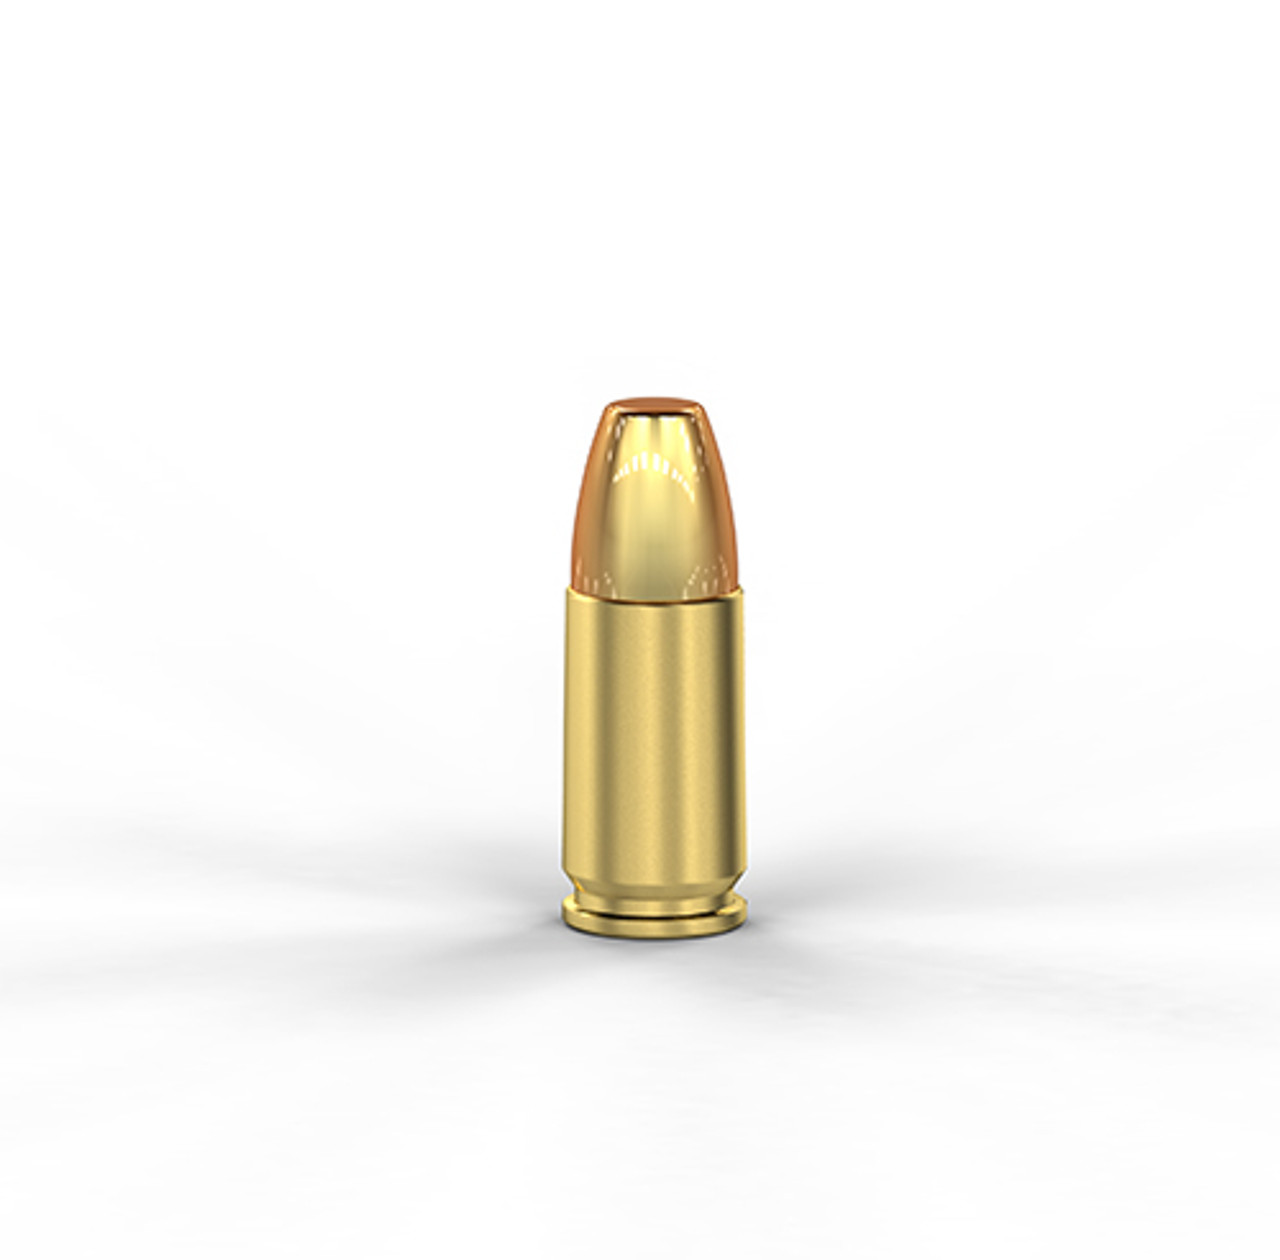 9mm Luger - 147gr FMJ Flat Subsonic